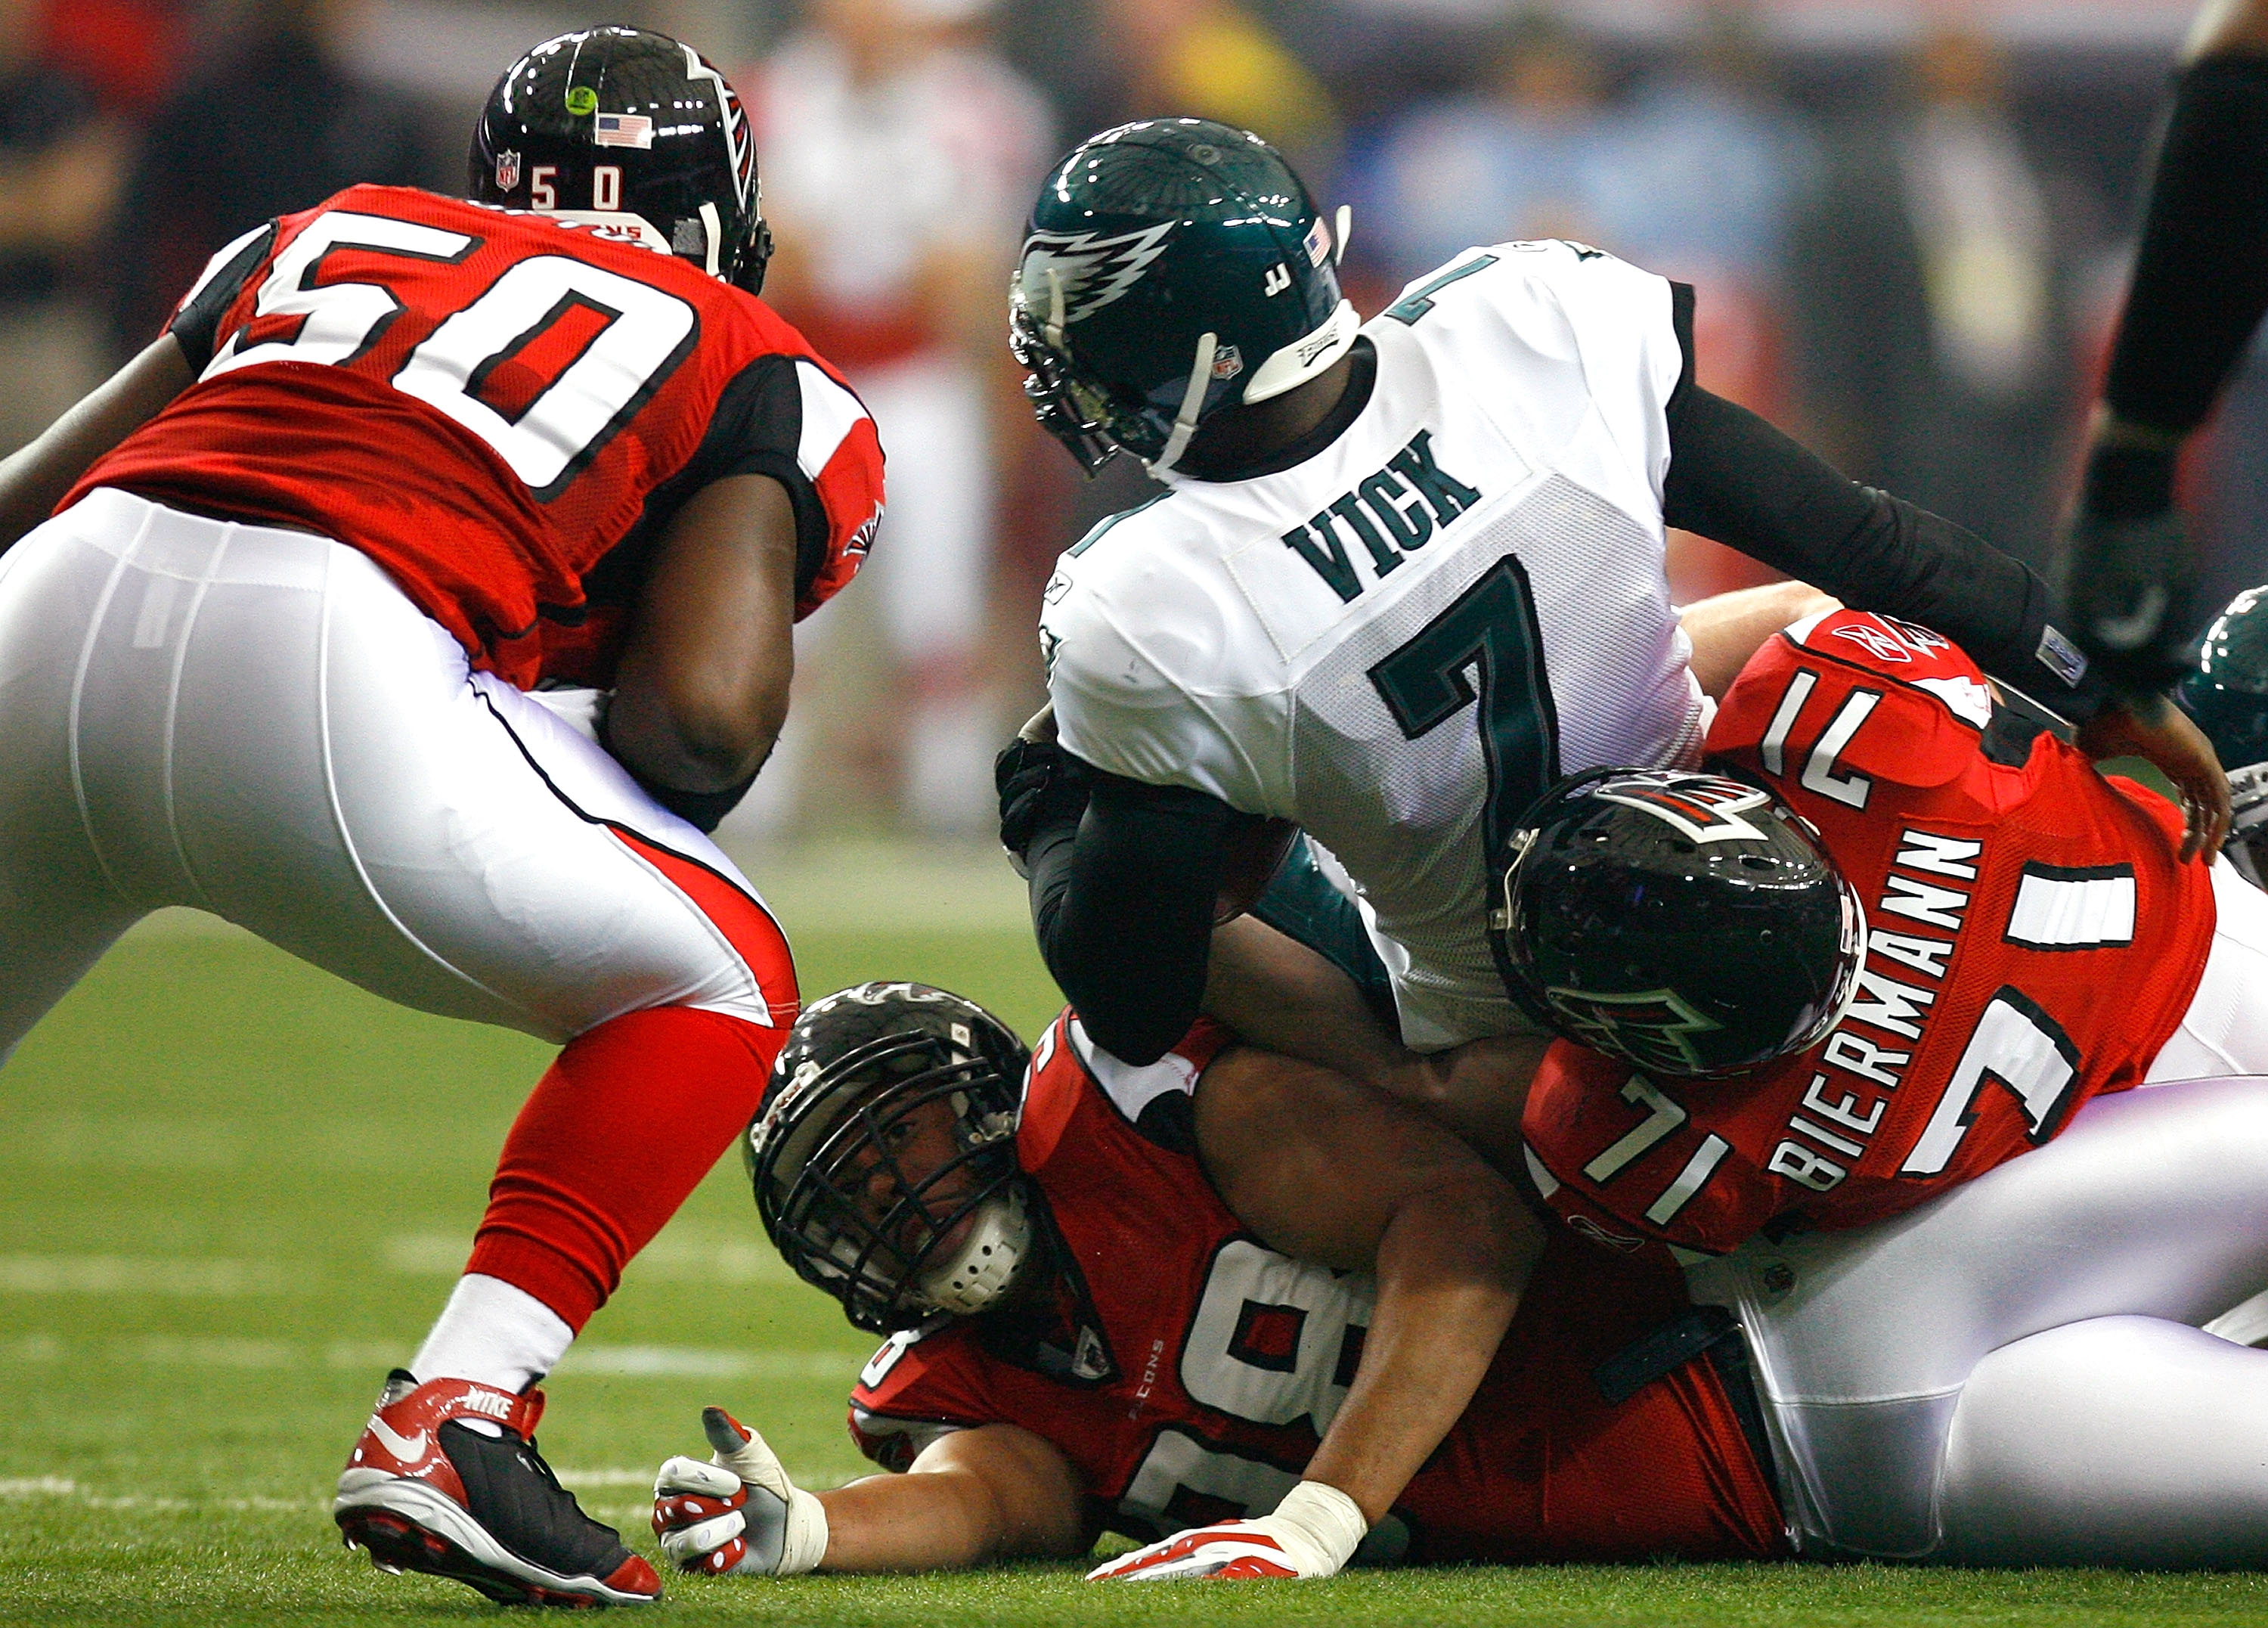 ATLANTA - DECEMBER 06:  Michael Vick #7 of the Philadelphia Eagles is tackled by Kroy Biermann #71, Curtis Lofton #50 and Jamaal Anderson #98 of the Atlanta Falcons at Georgia Dome on December 6, 2009 in Atlanta, Georgia.  (Photo by Kevin C. Cox/Getty Ima